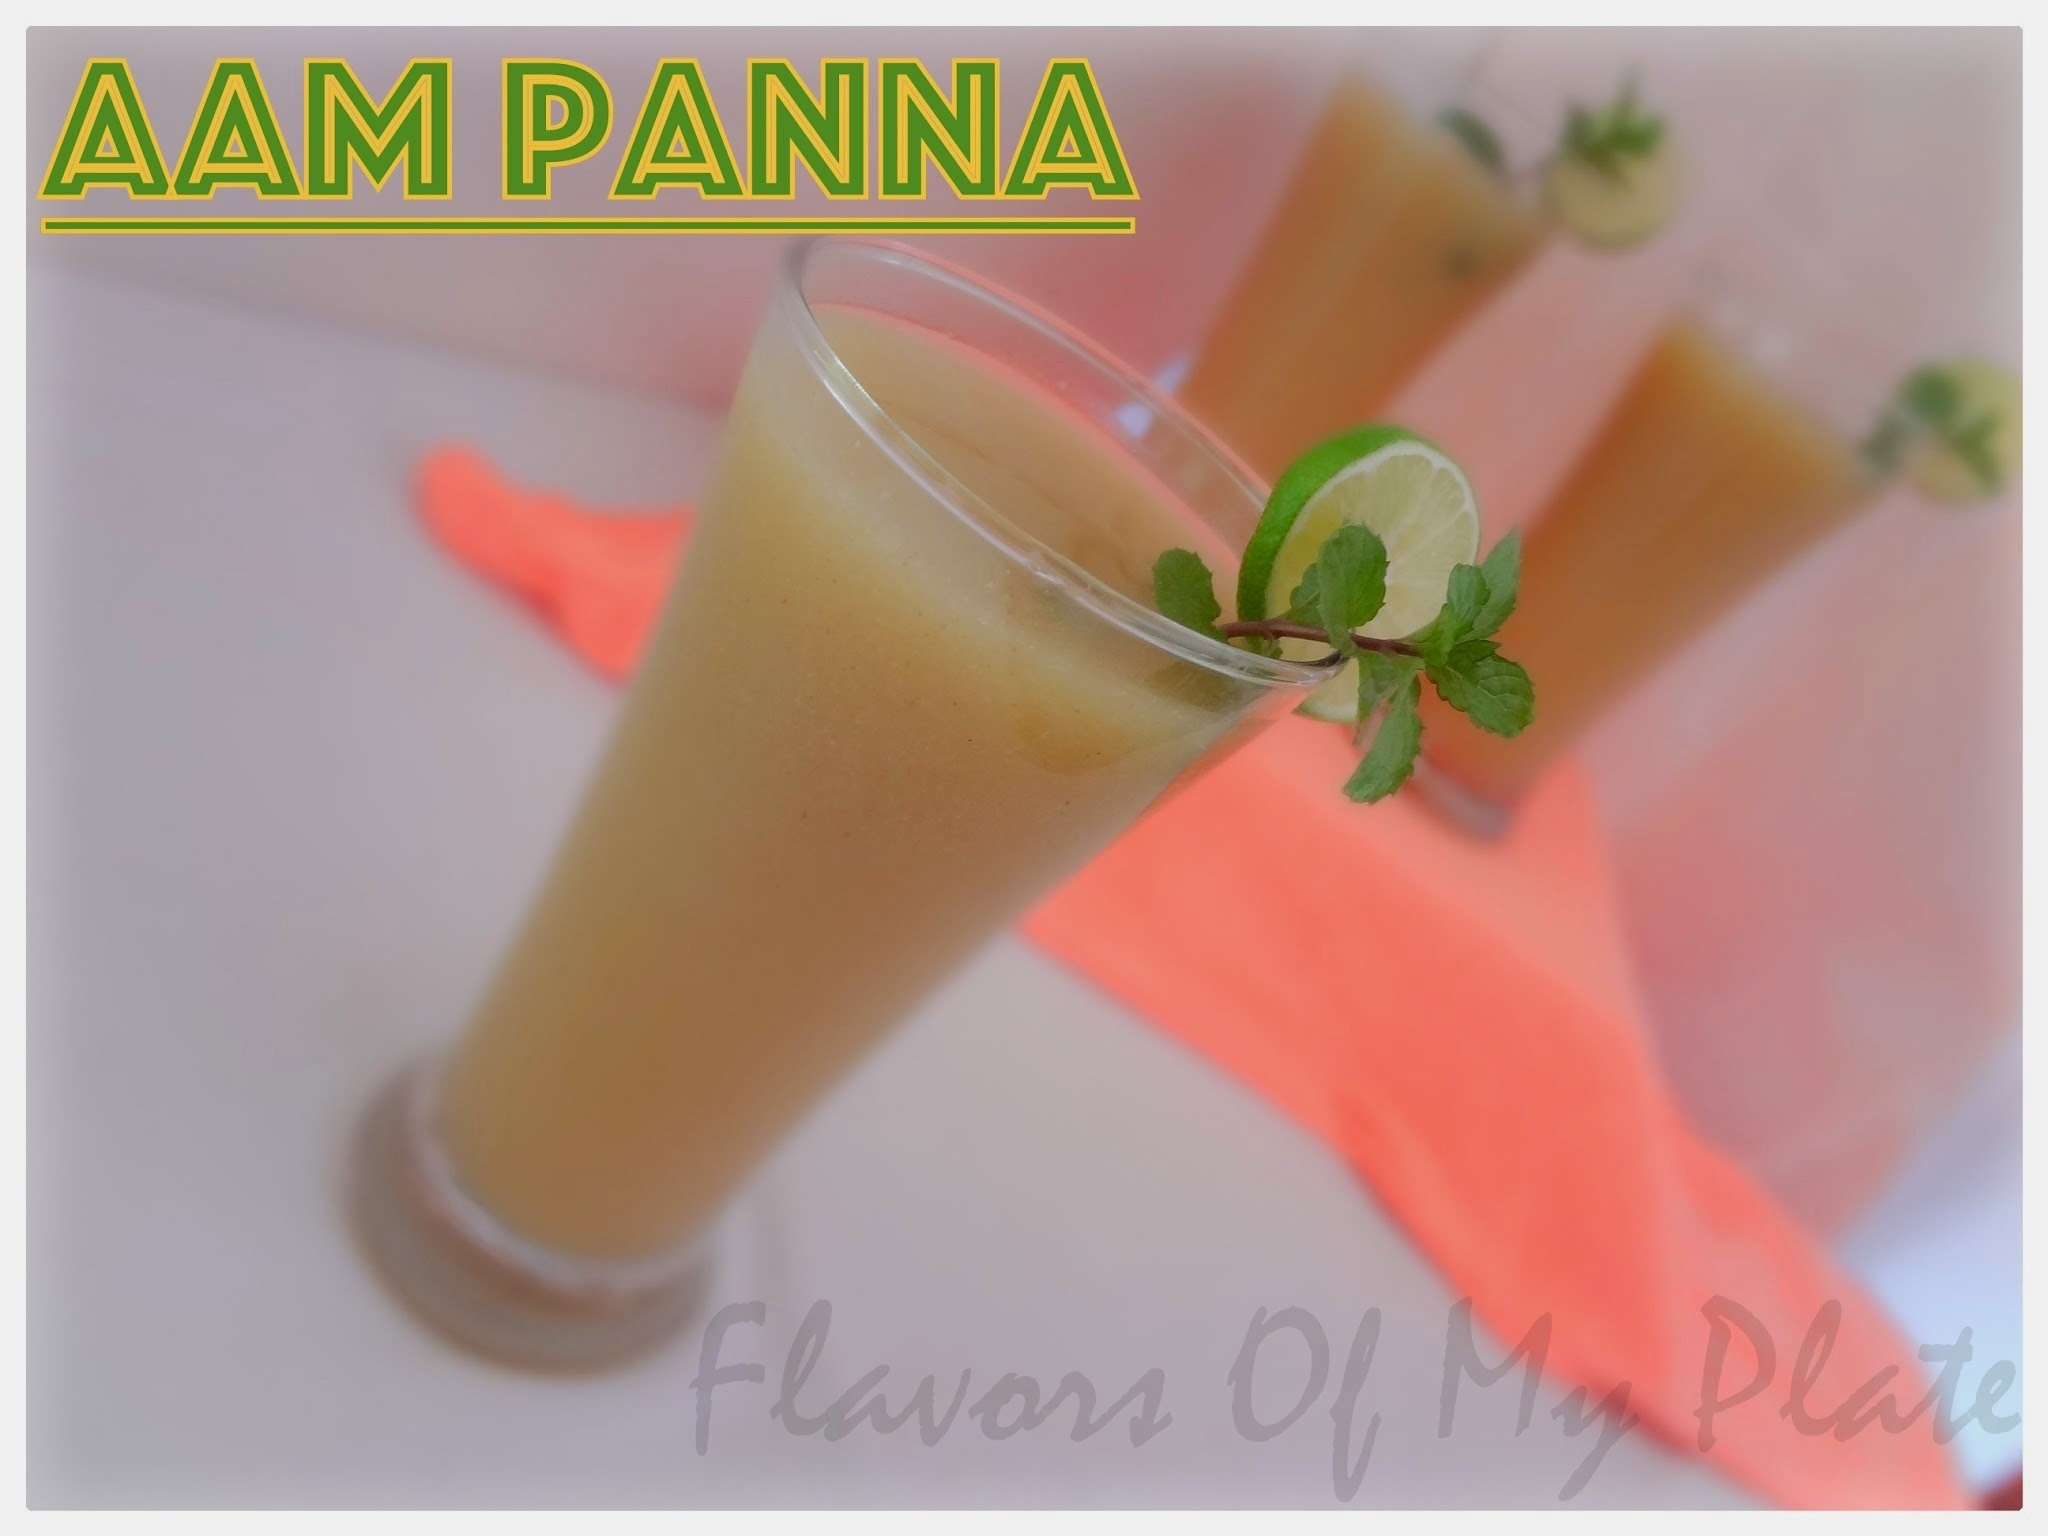 Aam Panna...Let's Beat the Heat In A Bong's Way